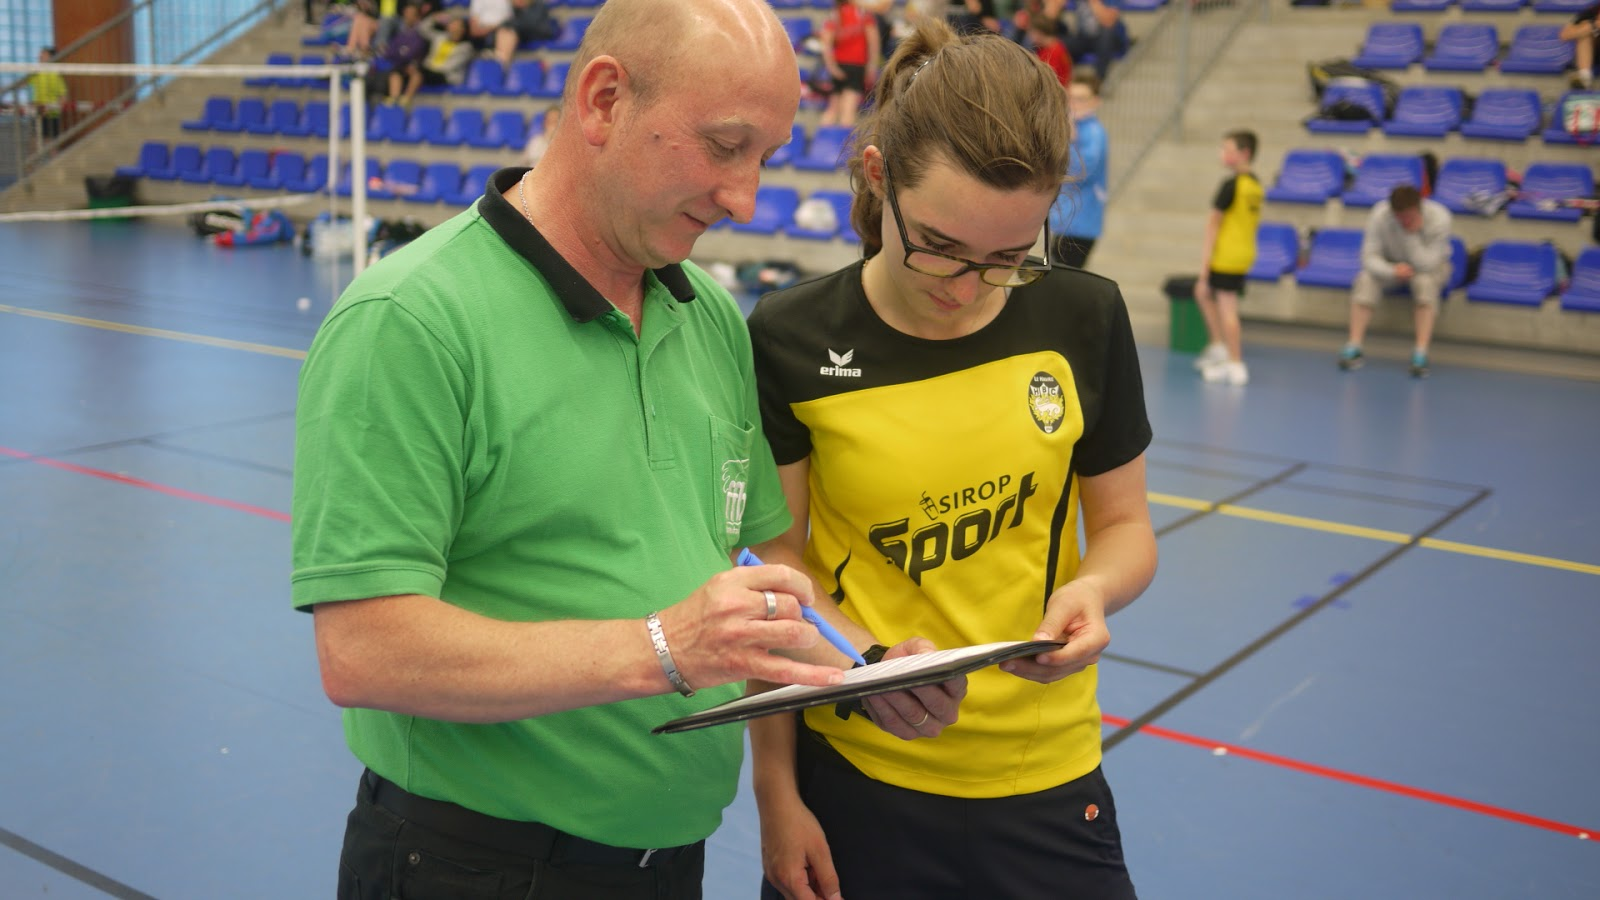 Formation Amt Ligue Normandie Ligue De Haute Normandie De Badminton Formation Quotjeunes